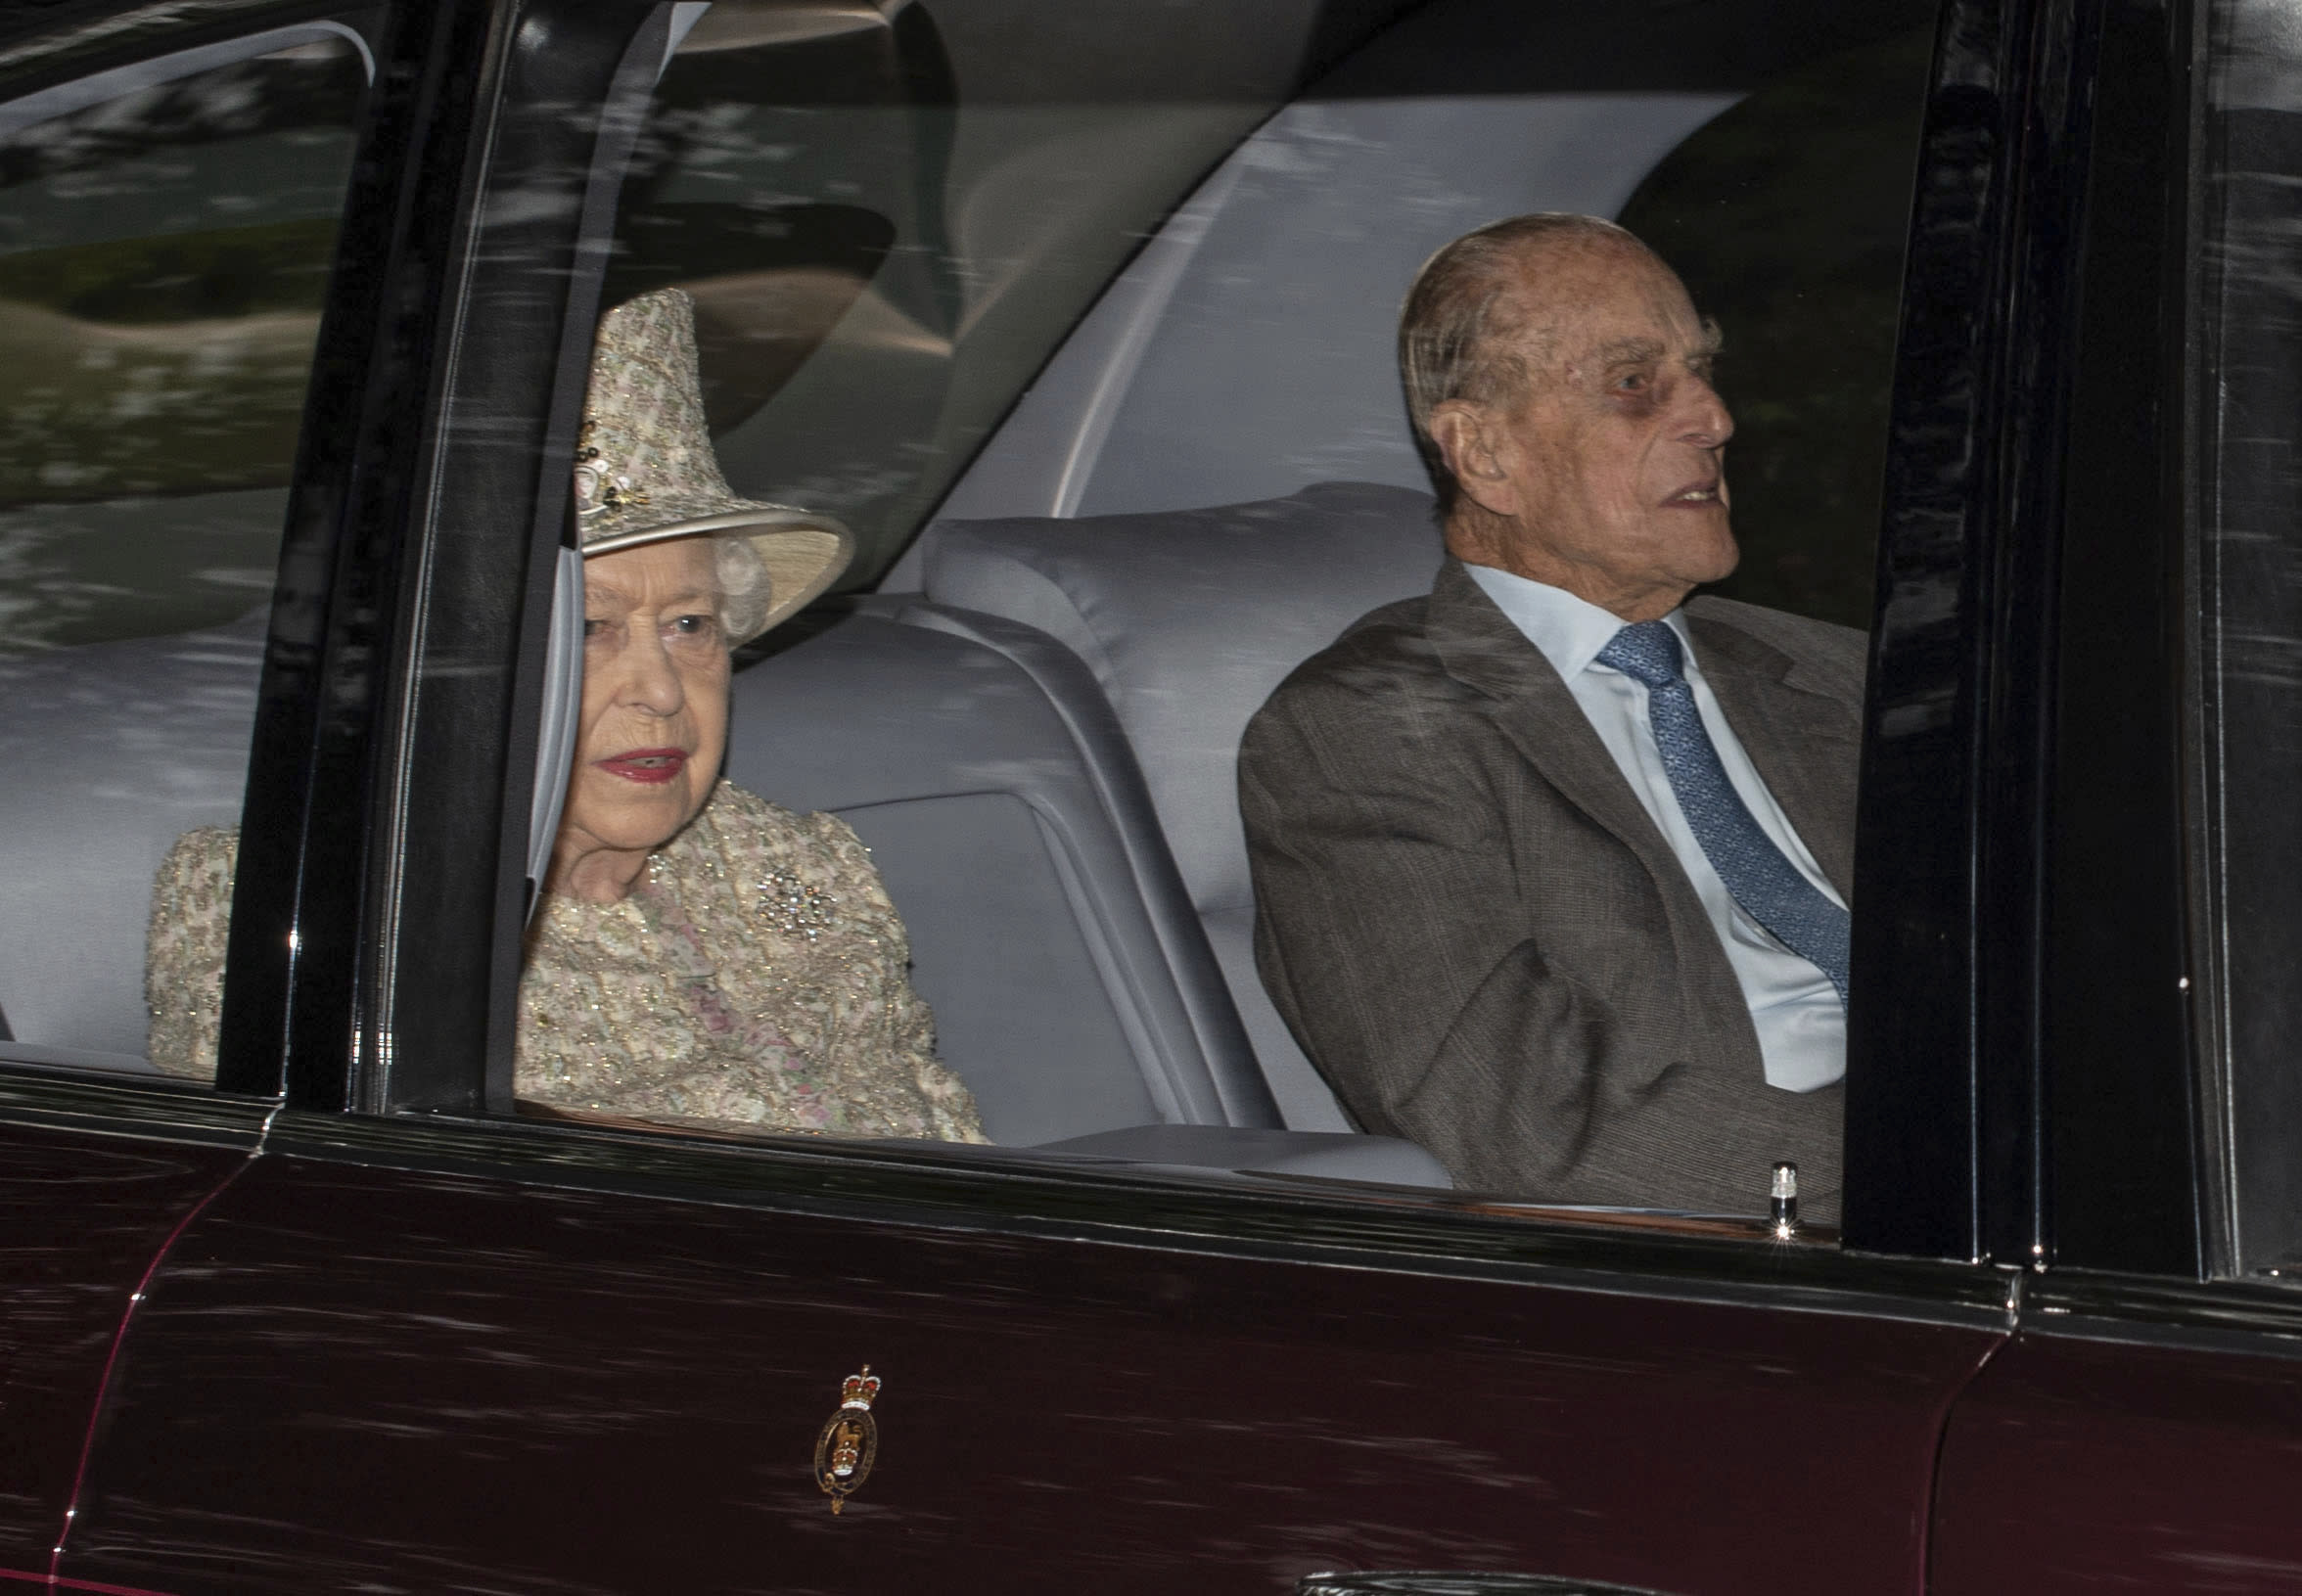 Her Majesty Queen Elizabeth II and Prince Philip The Duke of Edinburgh celebrate their 71st wedding anniversary on 11/20/18. They were married at Westminster Abbey on November 20th, 1947. - File Photo by: zz/KGC-492/STAR MAX/IPx 2018 8/19/18 Her Majesty Queen Elizabeth II and Prince Philip The Duke of Edinburgh attend the Sunday Church Service at Crathie Kirk - the regular place of worship of the British Royal Family when they are on holiday at Balmoral Castle. (Crathie, Aberdeenshire, Scotland, UK)